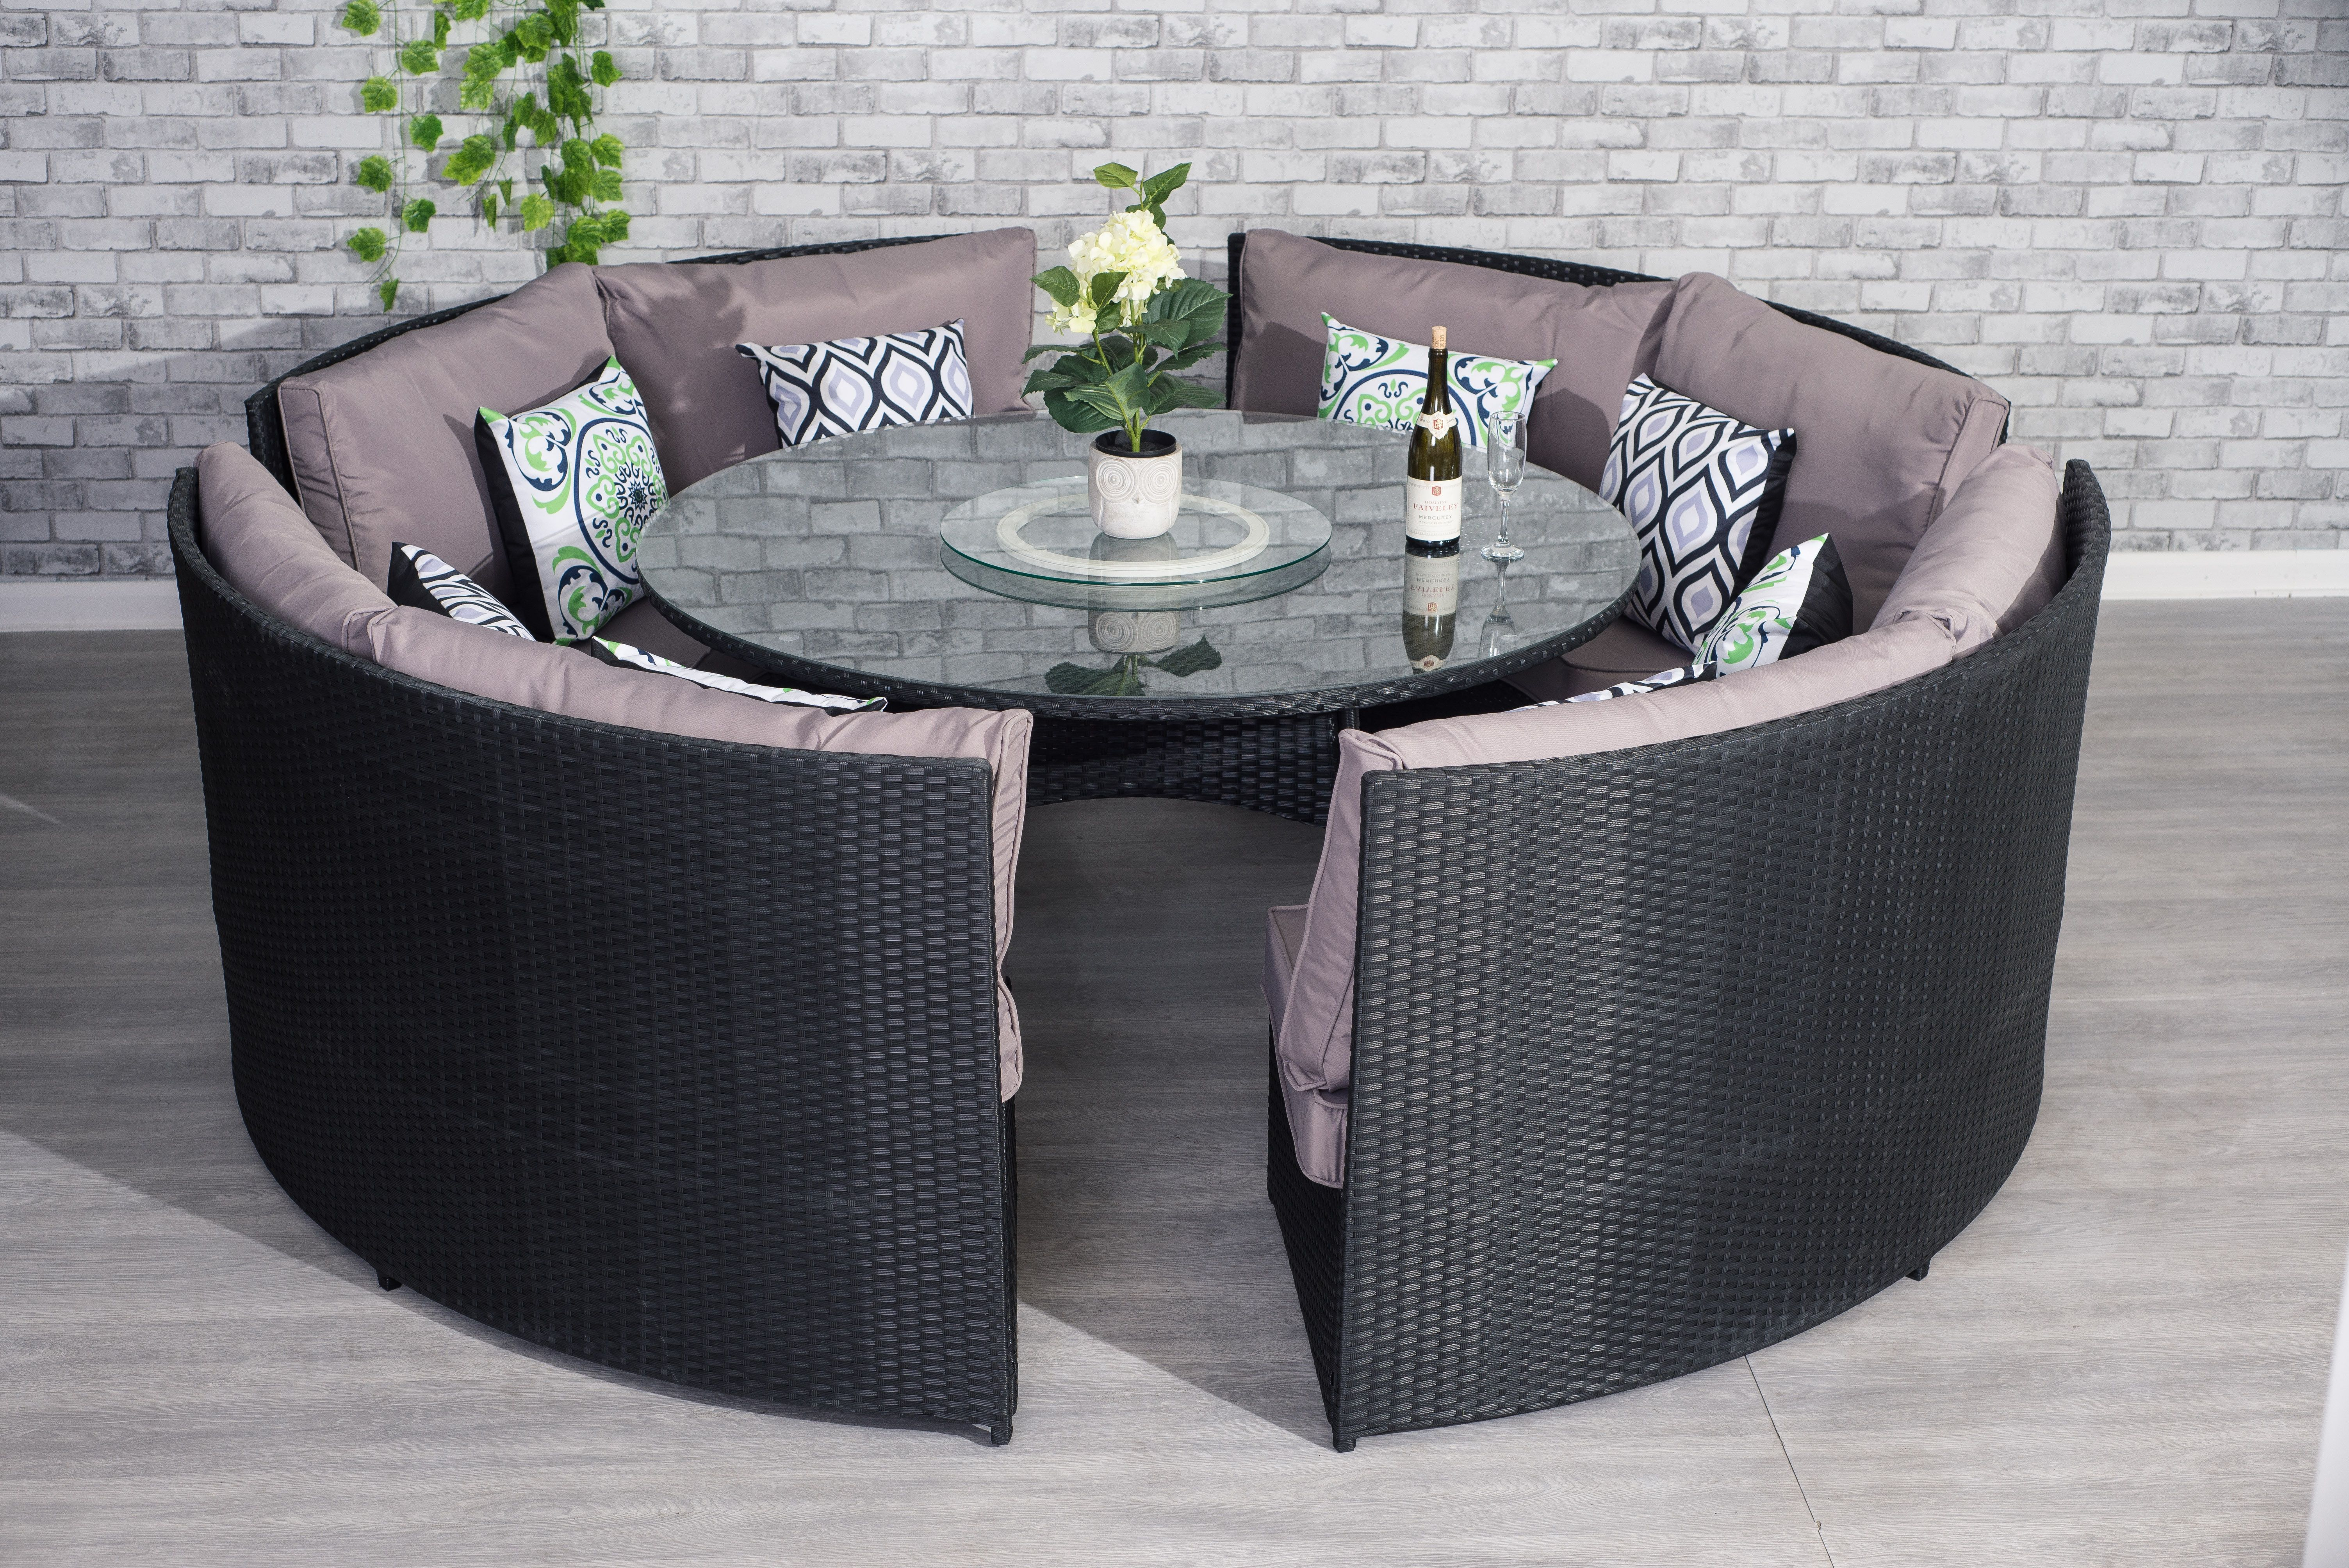 Round Dining Set 12 Seater Rattan Patio Outdoor Table Bench Chairs Clearance New Homesupp Backyard Patio Furniture Clearance Patio Furniture Patio Table Decor